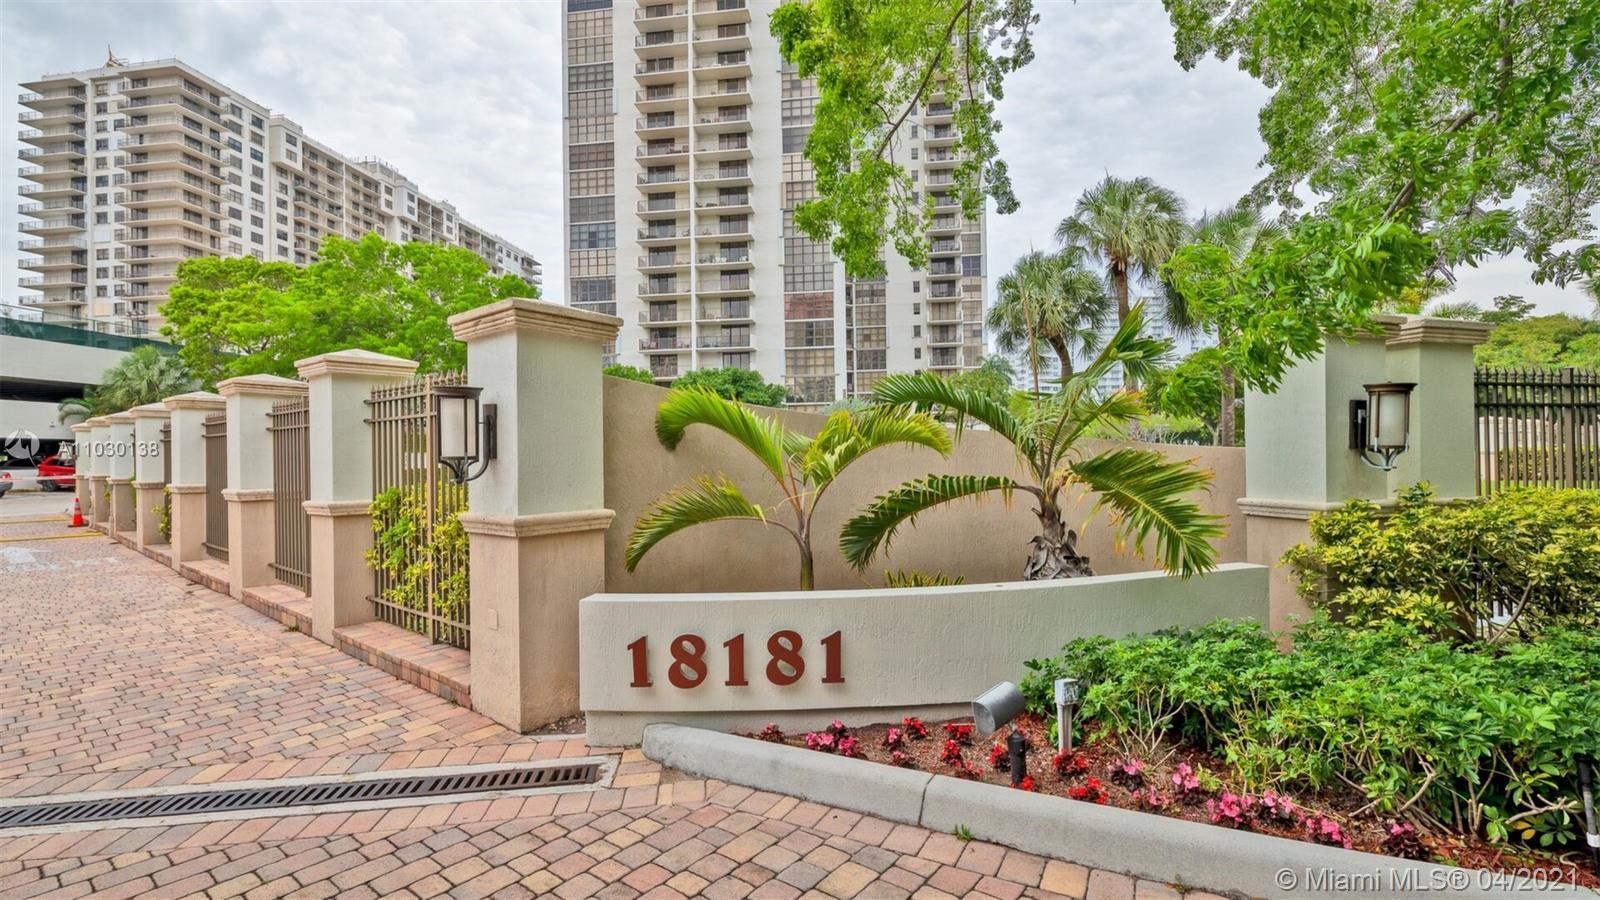 Beautifully upgraded unit with unobstructed view of Dumfounding Bay and Intracoastal. Foyer entrance